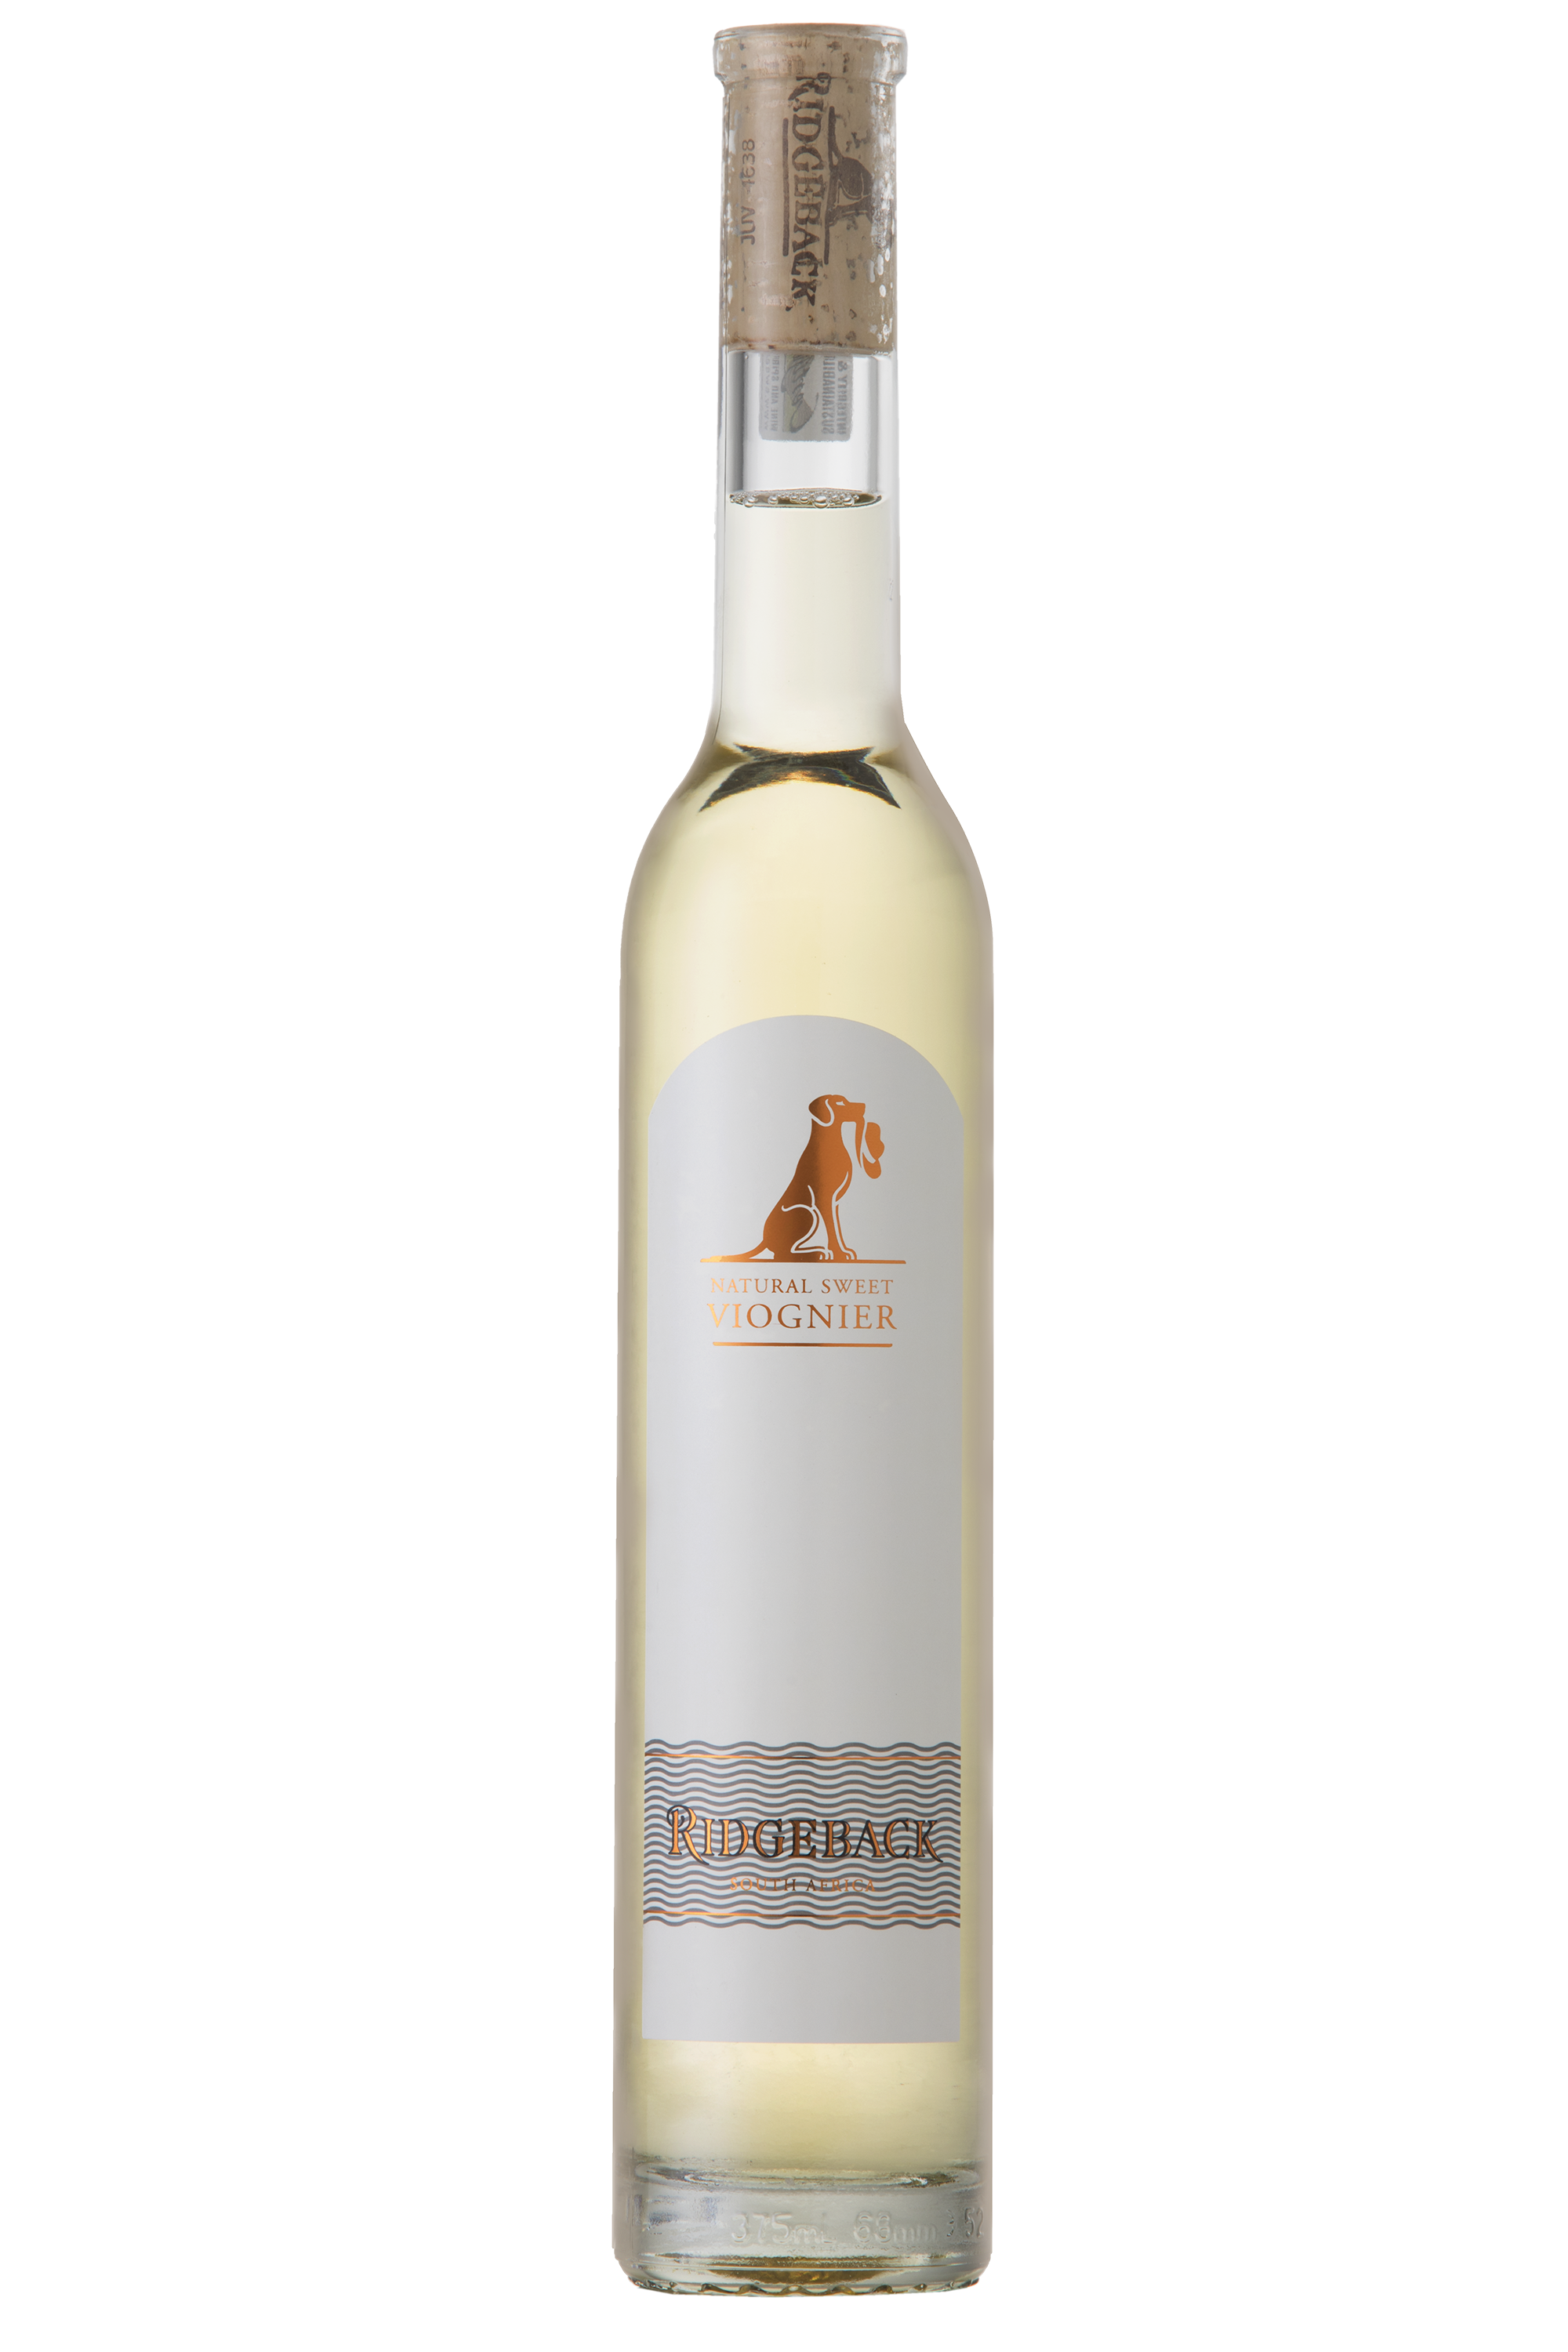 Ridgeback Natural Sweet Viognier 2020